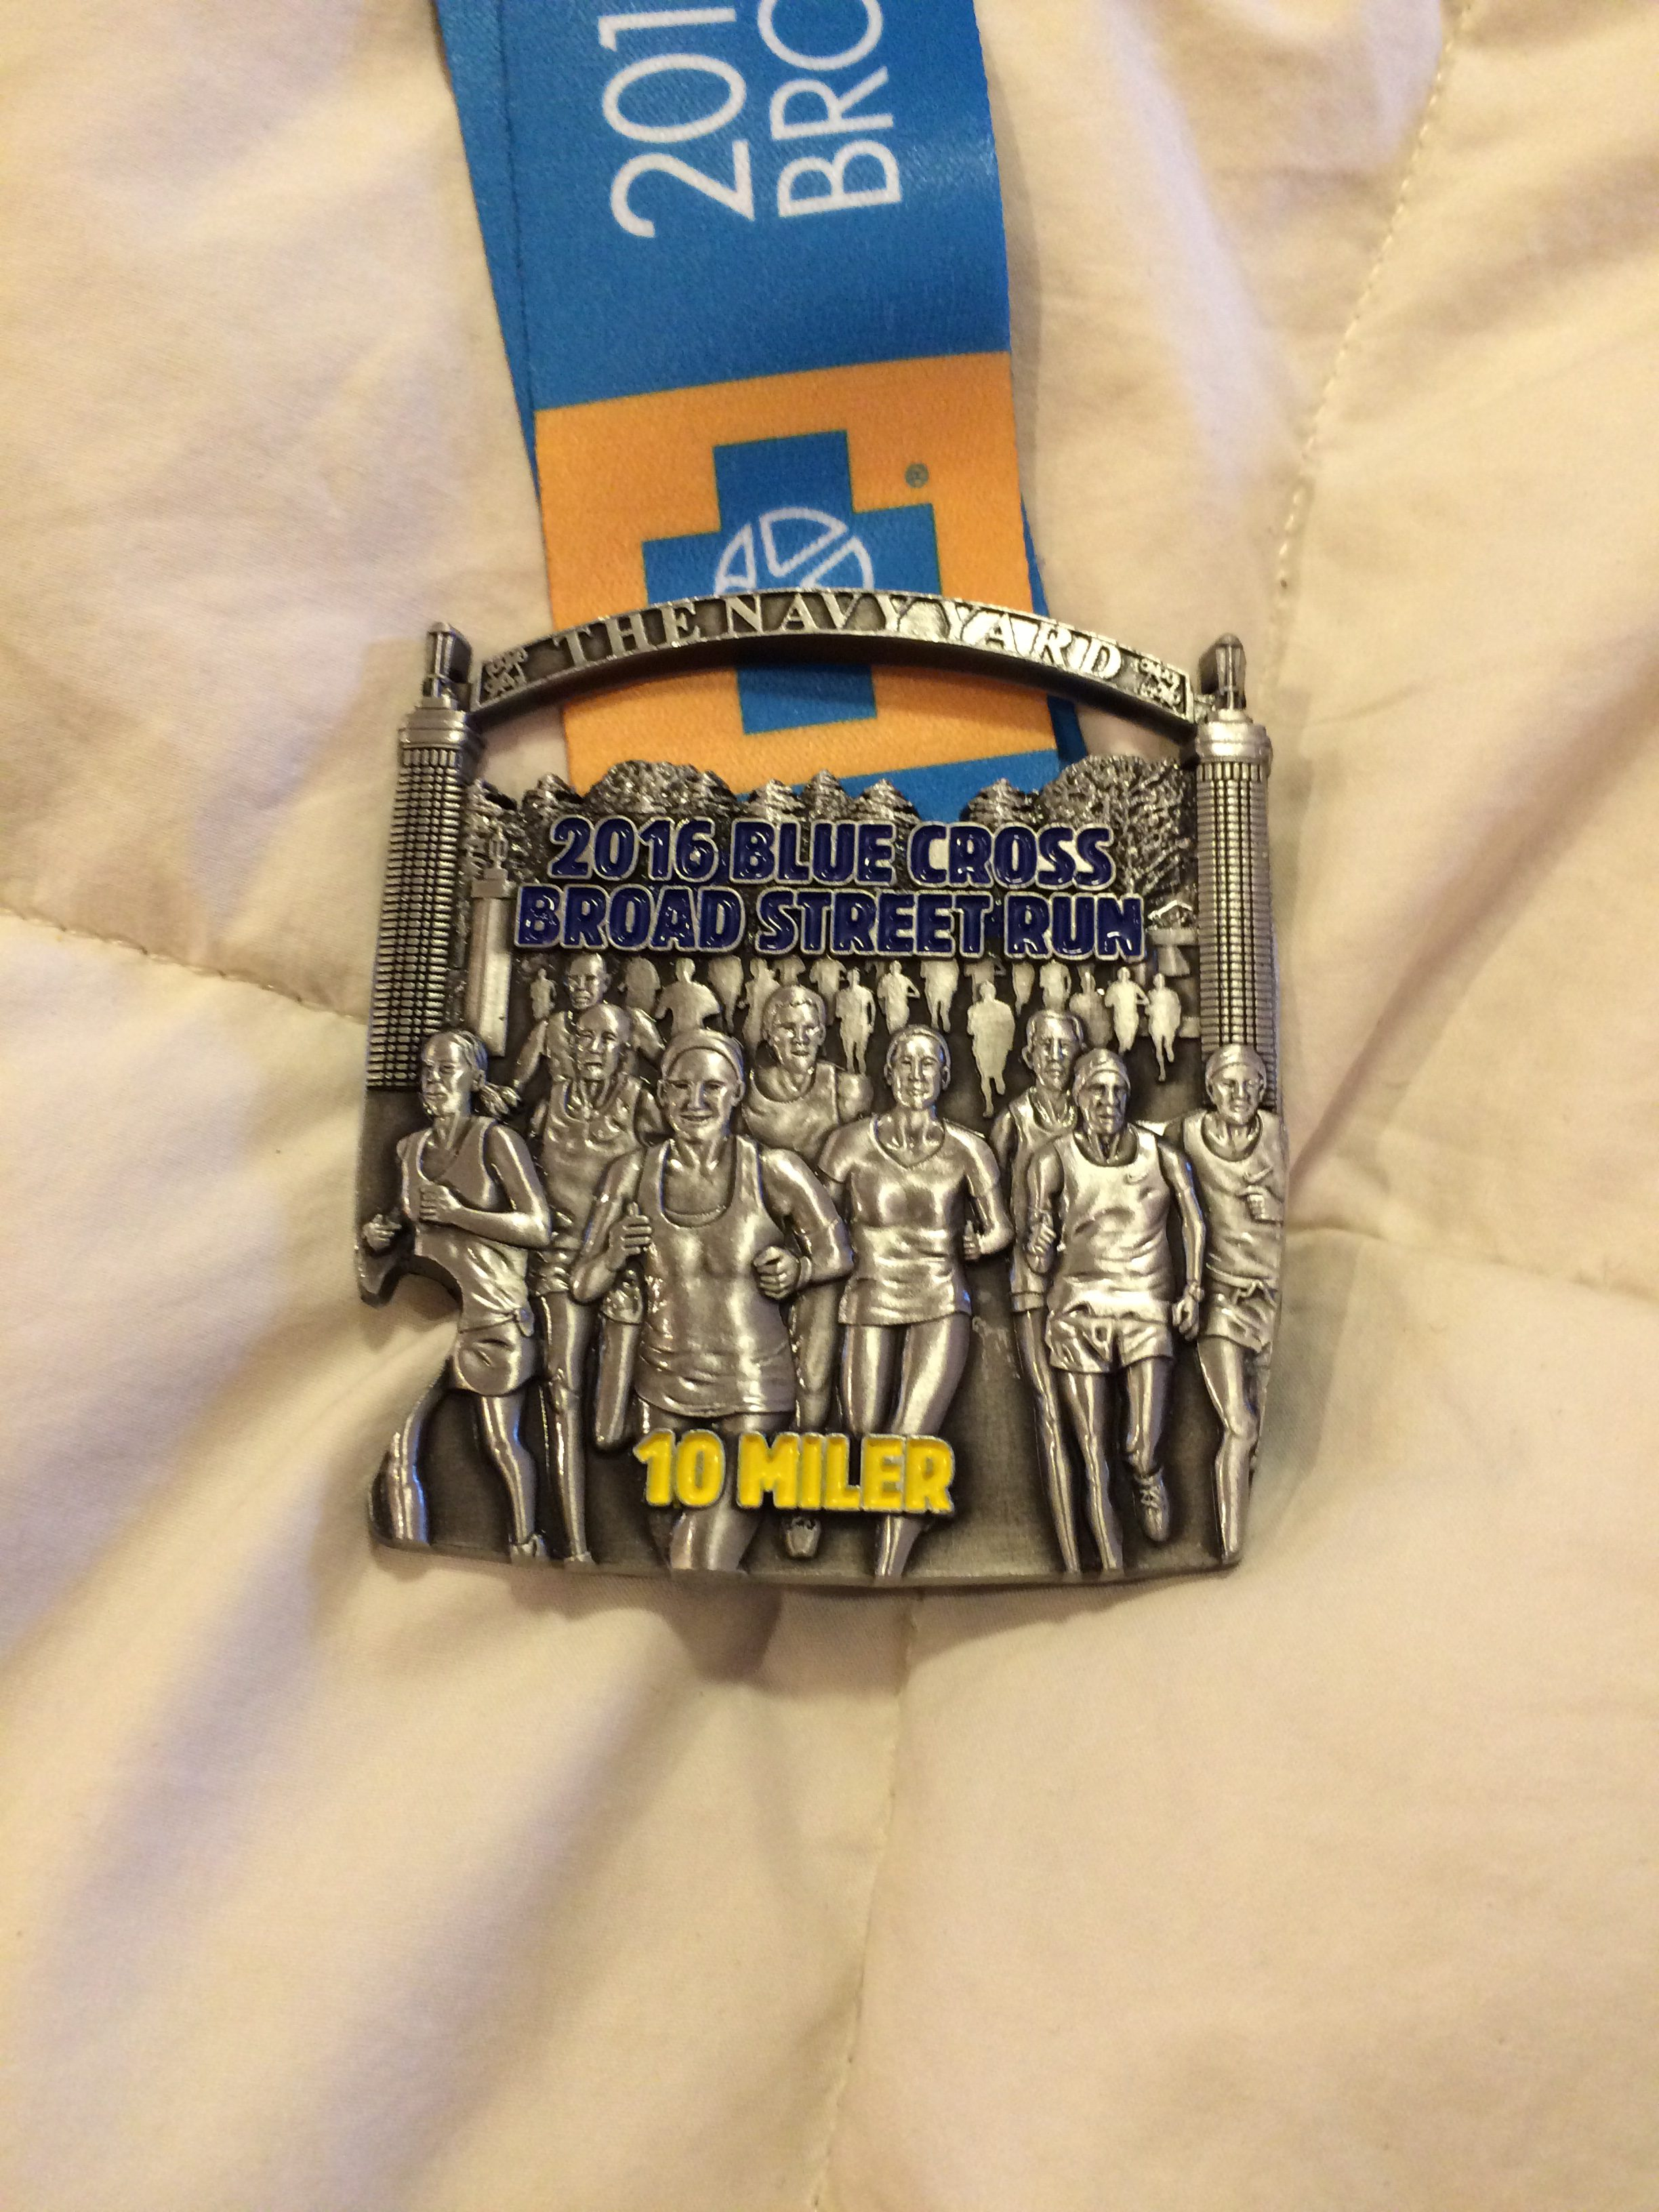 I Beat The Broad Street Run - Voices at Temple